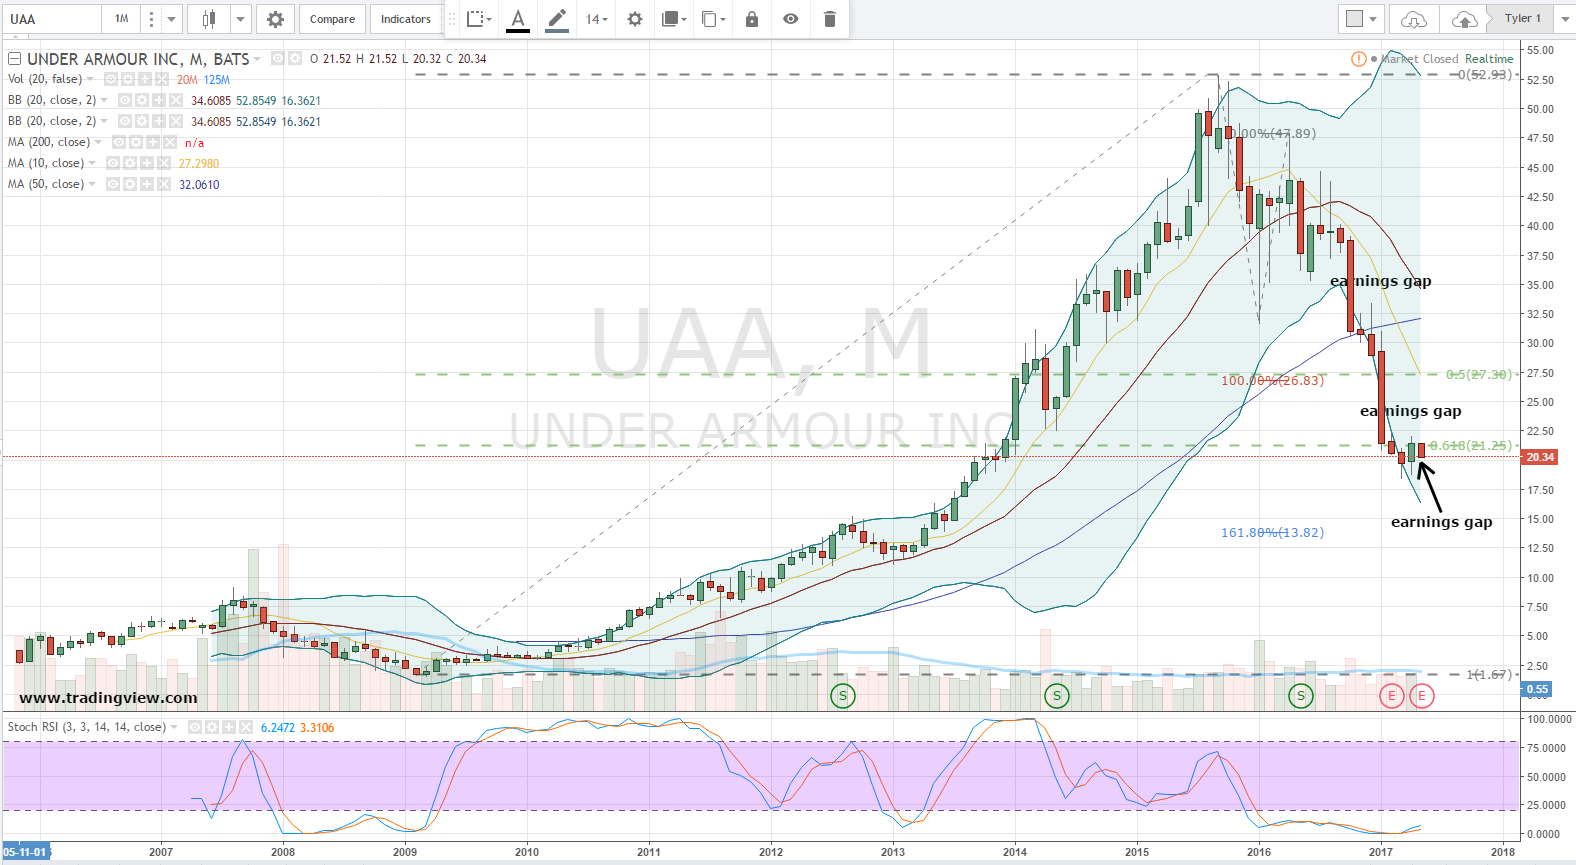 Click To Enlarge If Uaa Stock Had A Team Mascot, It Wouldn't Be Rainbows,  Puppy Dogs Or Even Bulls At This Time, For That Matter Nonetheless, In  Looking At